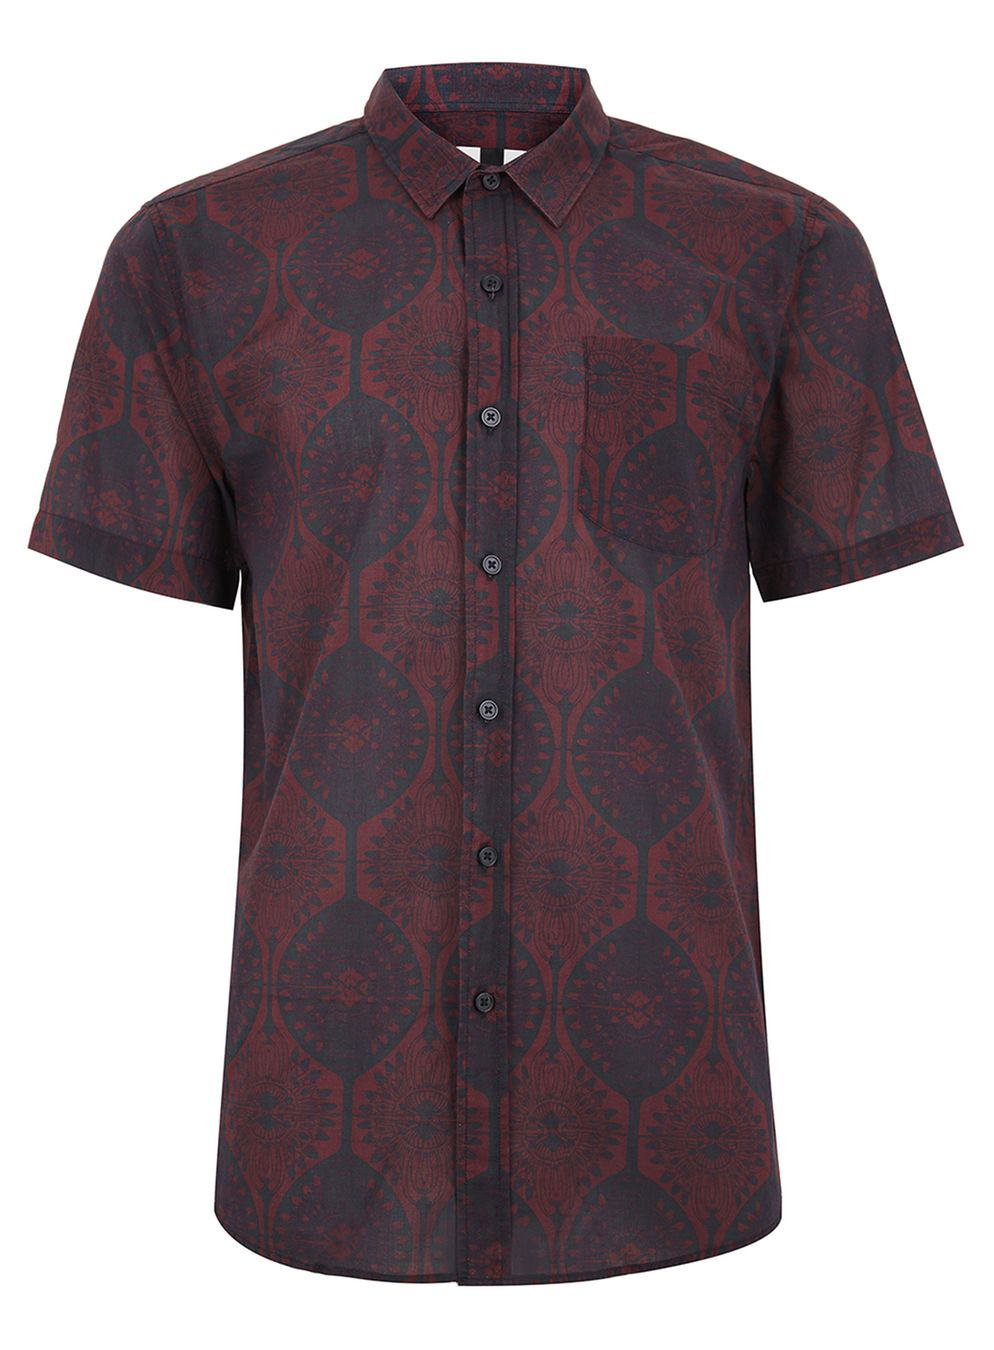 Topman men's Art deco Burgandy button down shirt